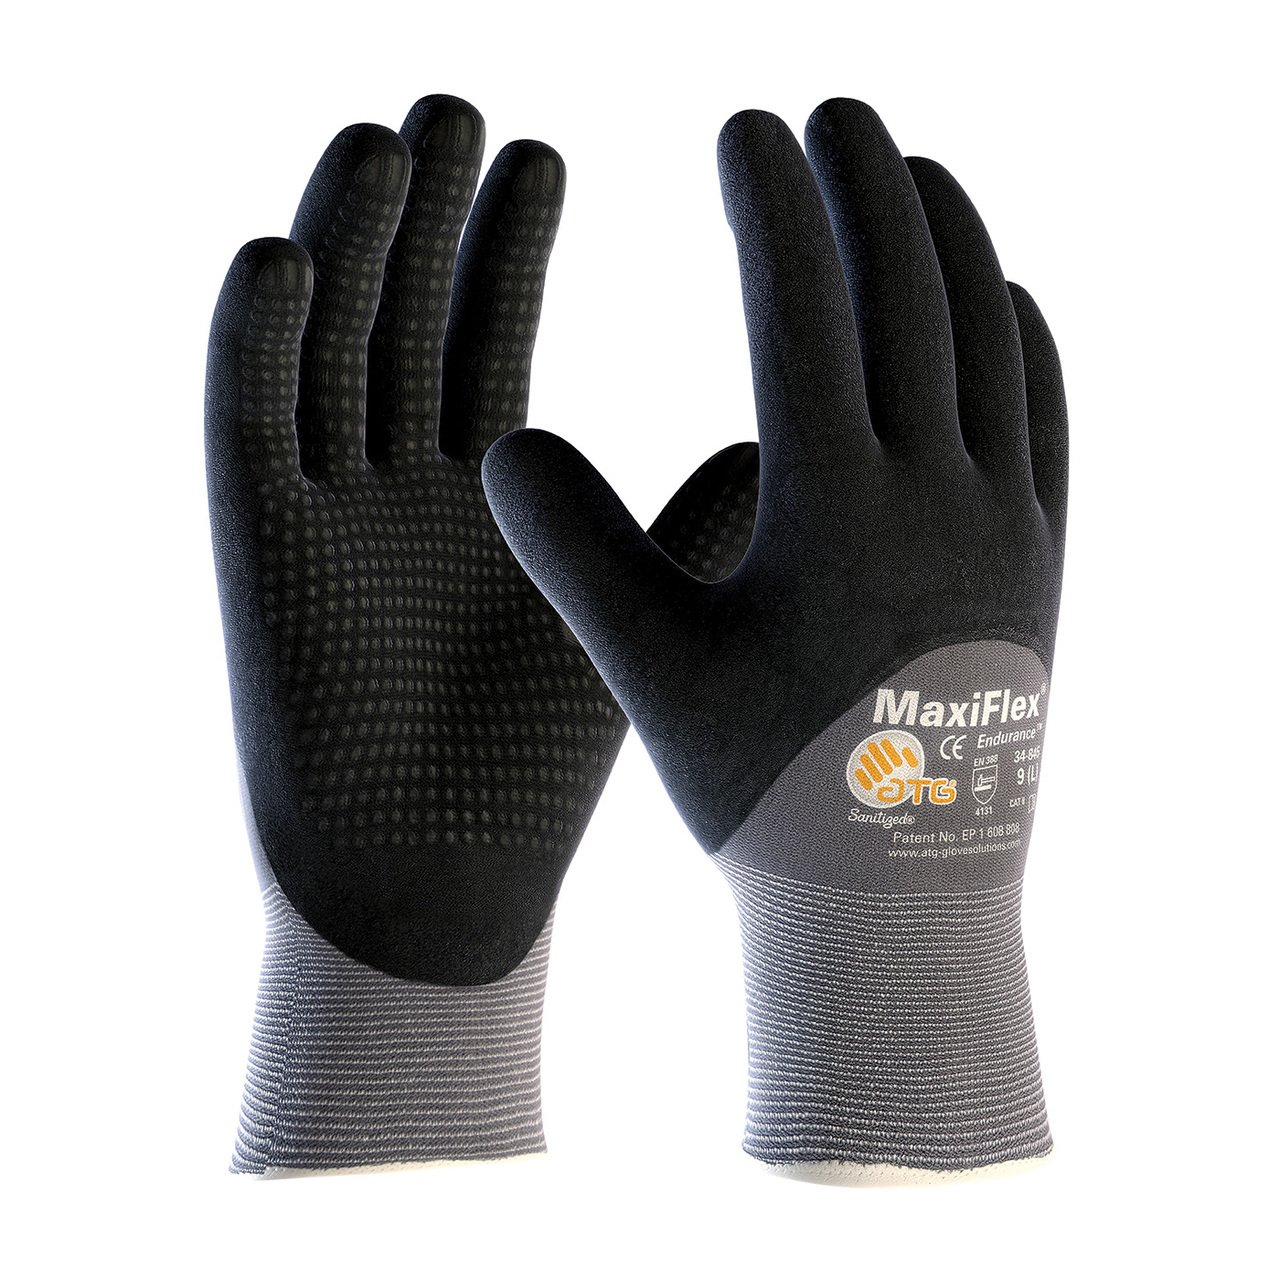 MaxiFlex 34-845 Gloves with Nitrile Micro-Foam Grip (24 Pack)